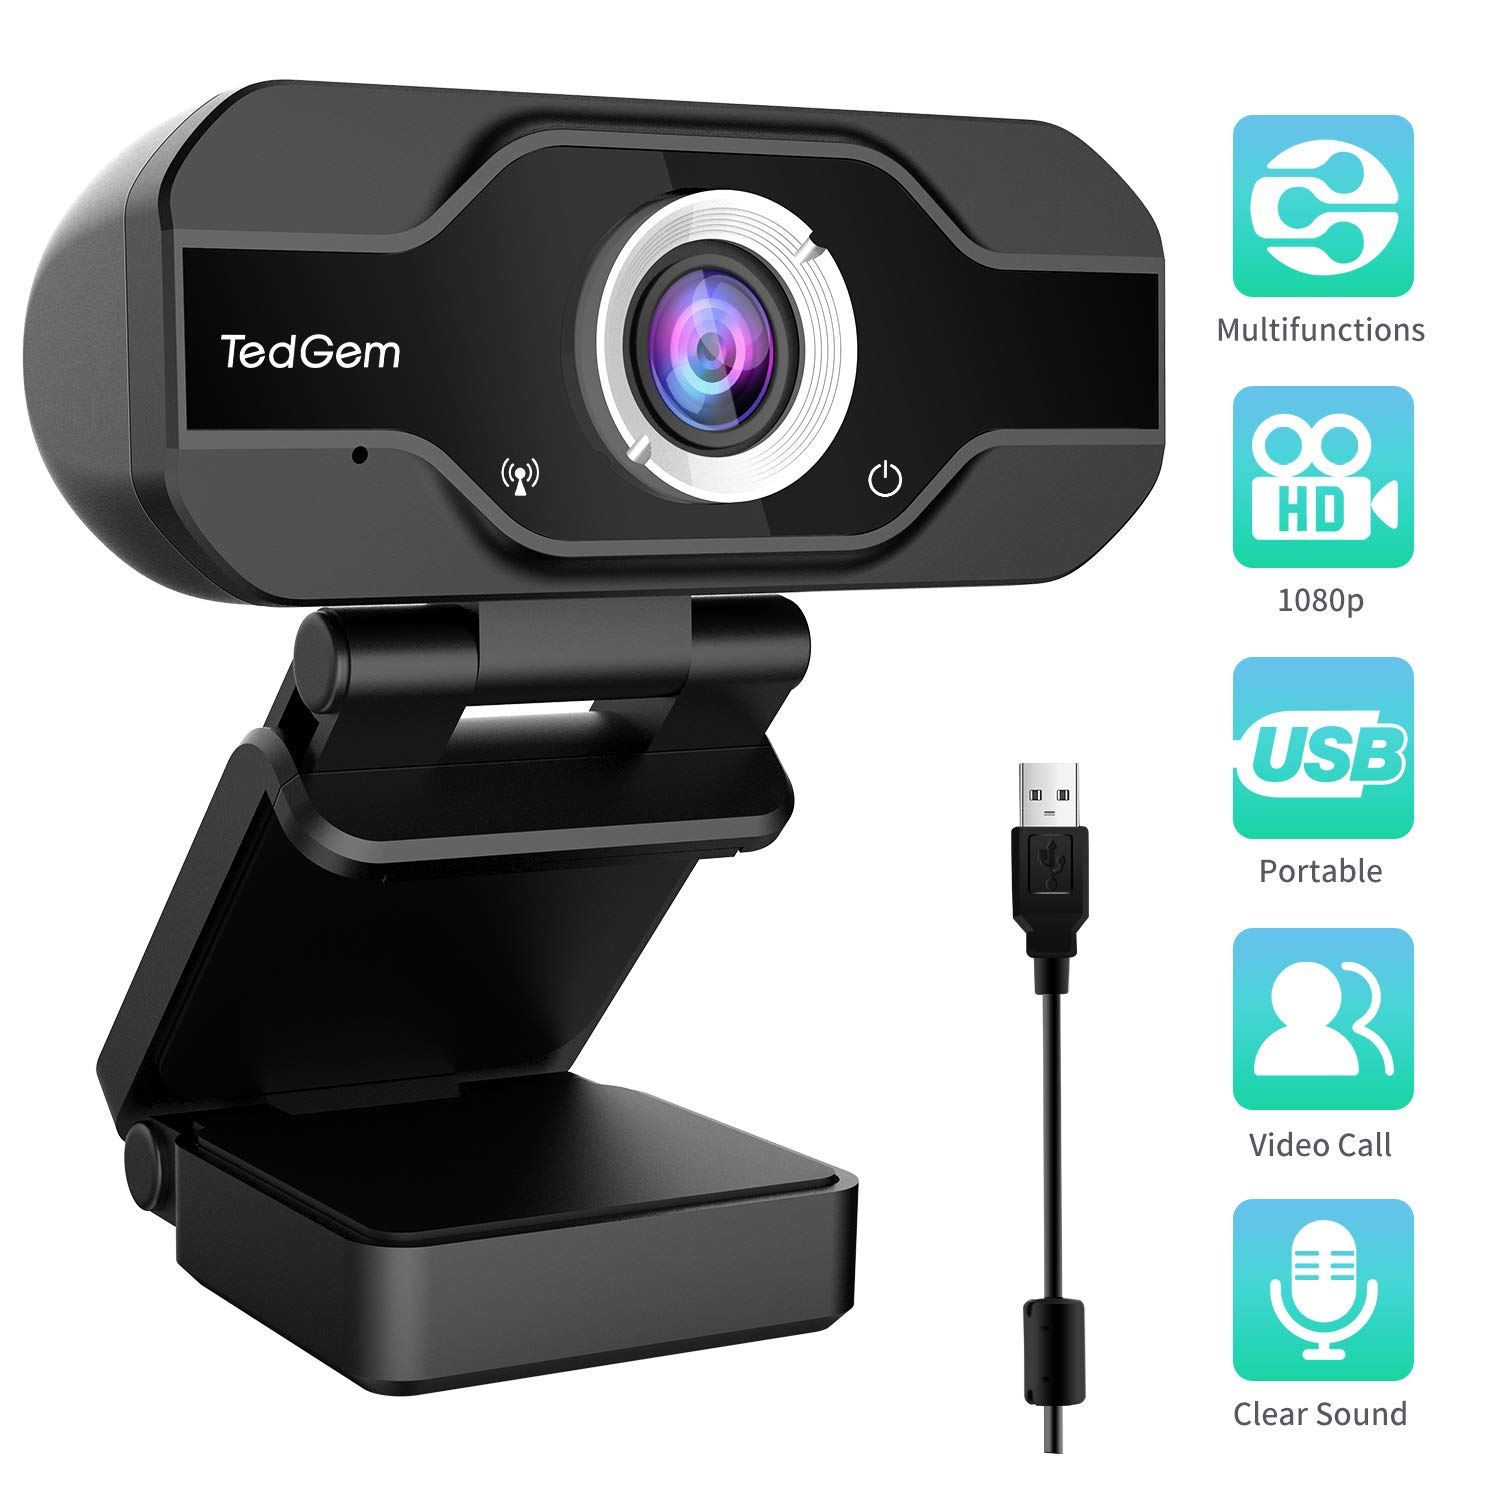 PC Webcam, TedGem 1080P Full HD Webcam USB Desktop & Laptop Webcam Live Streaming Webcam with Microphone Widescreen HD Video Webcam 90-Degree Extended View for Video Calling, Conferencing, Recording by TedGem